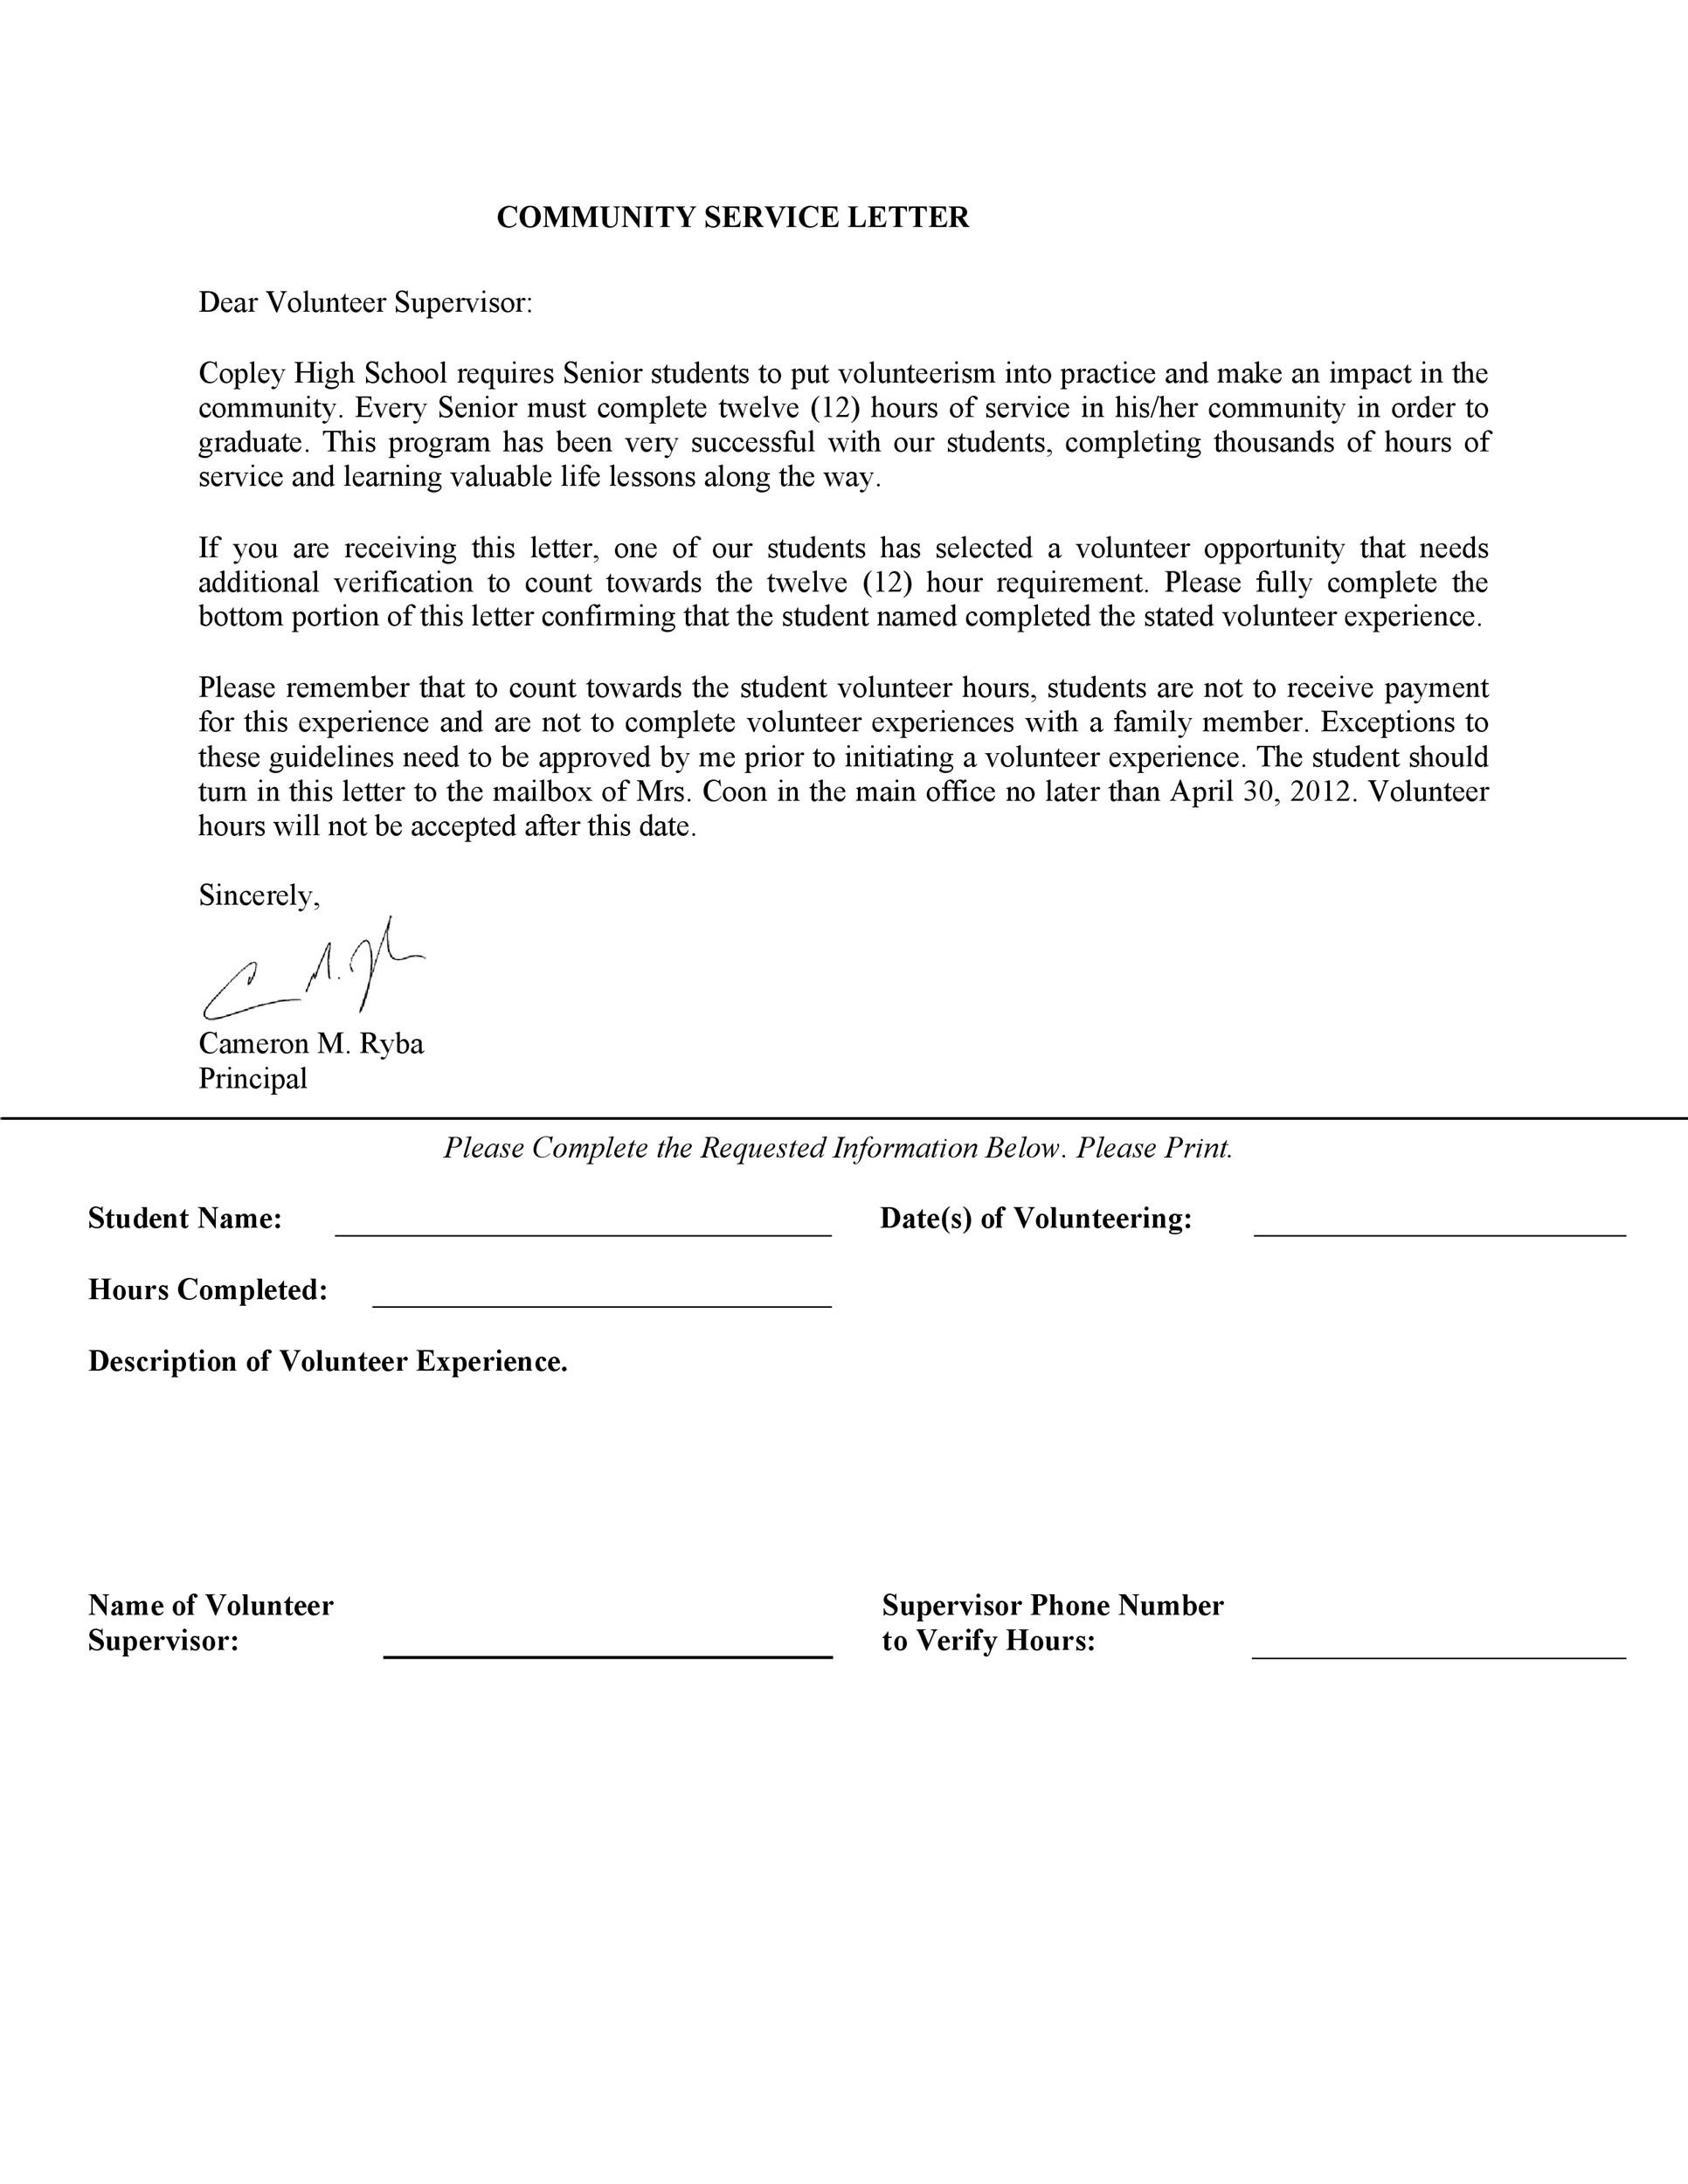 Free community service letter template 23